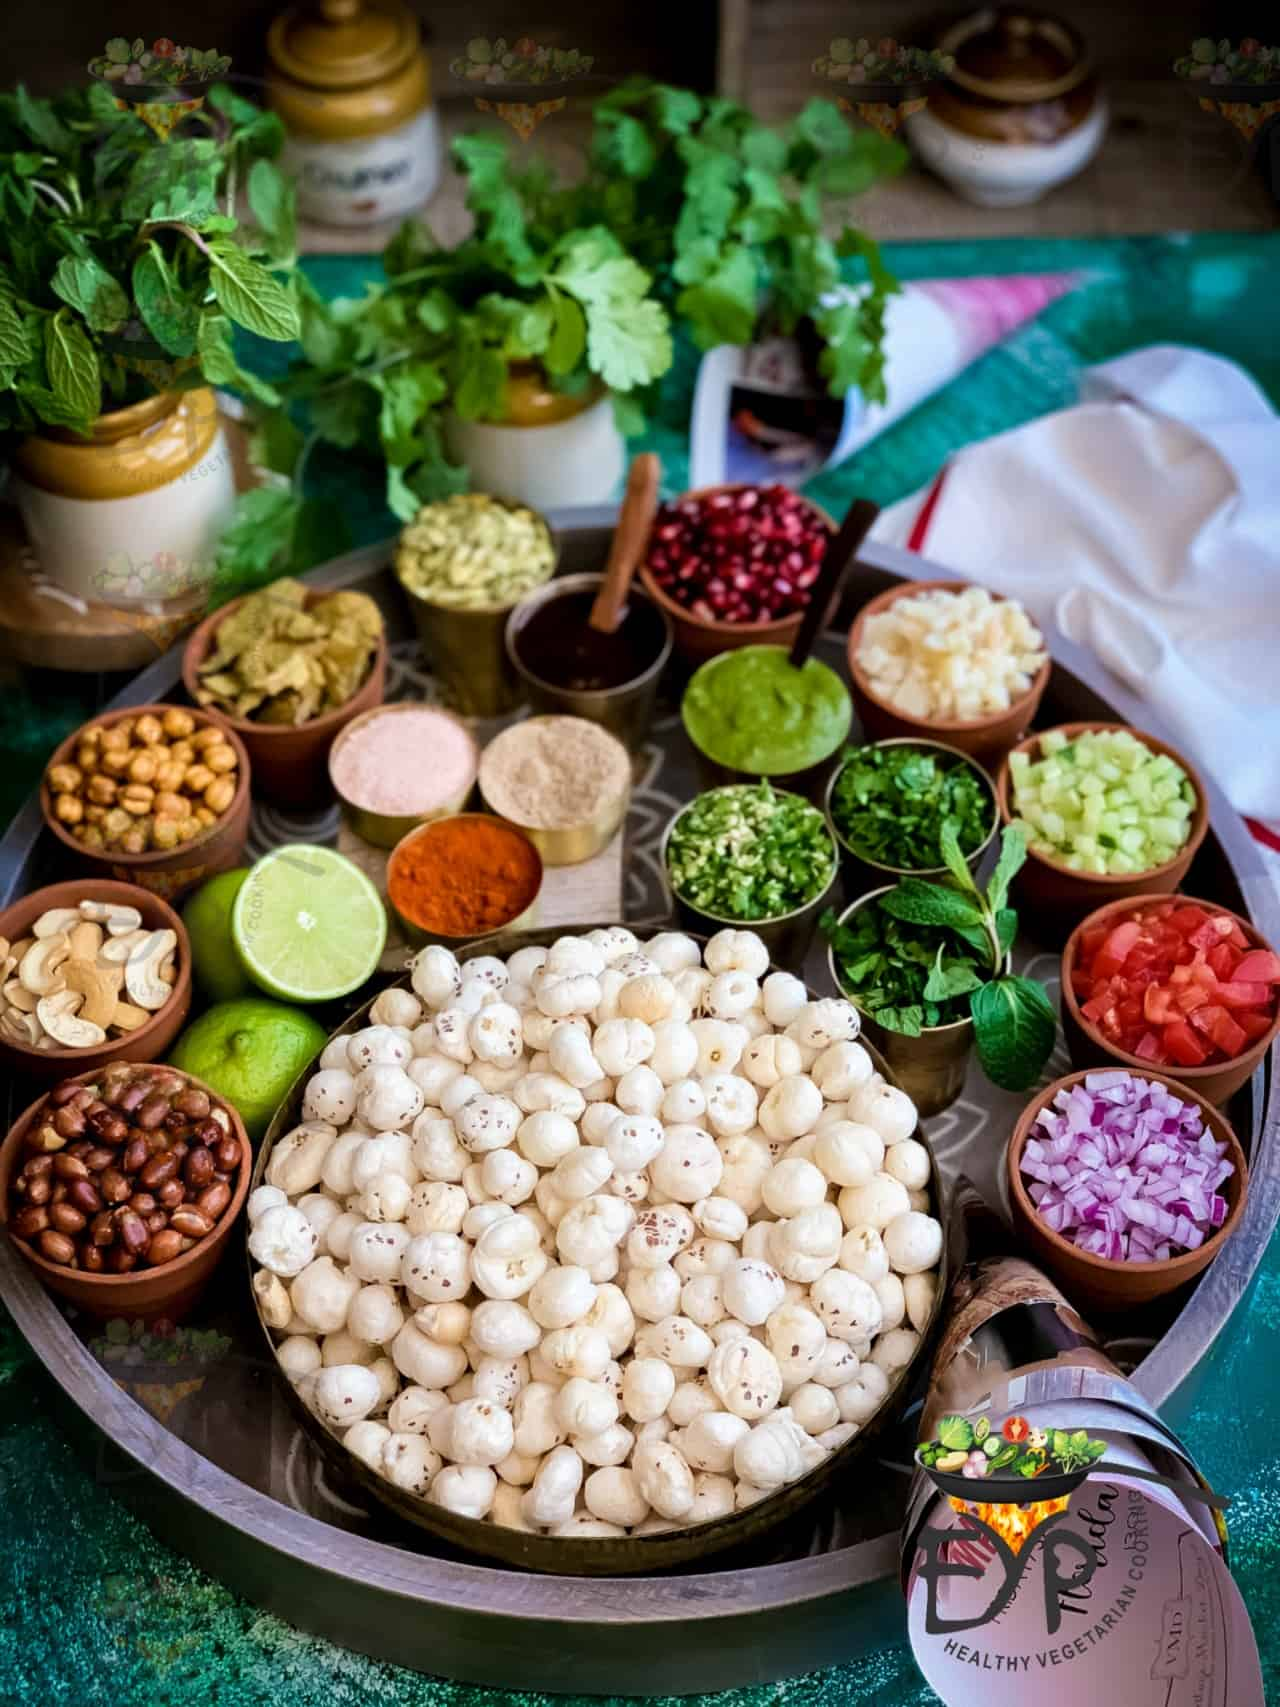 Makhana along with other ingredients used in Makhana Bhel